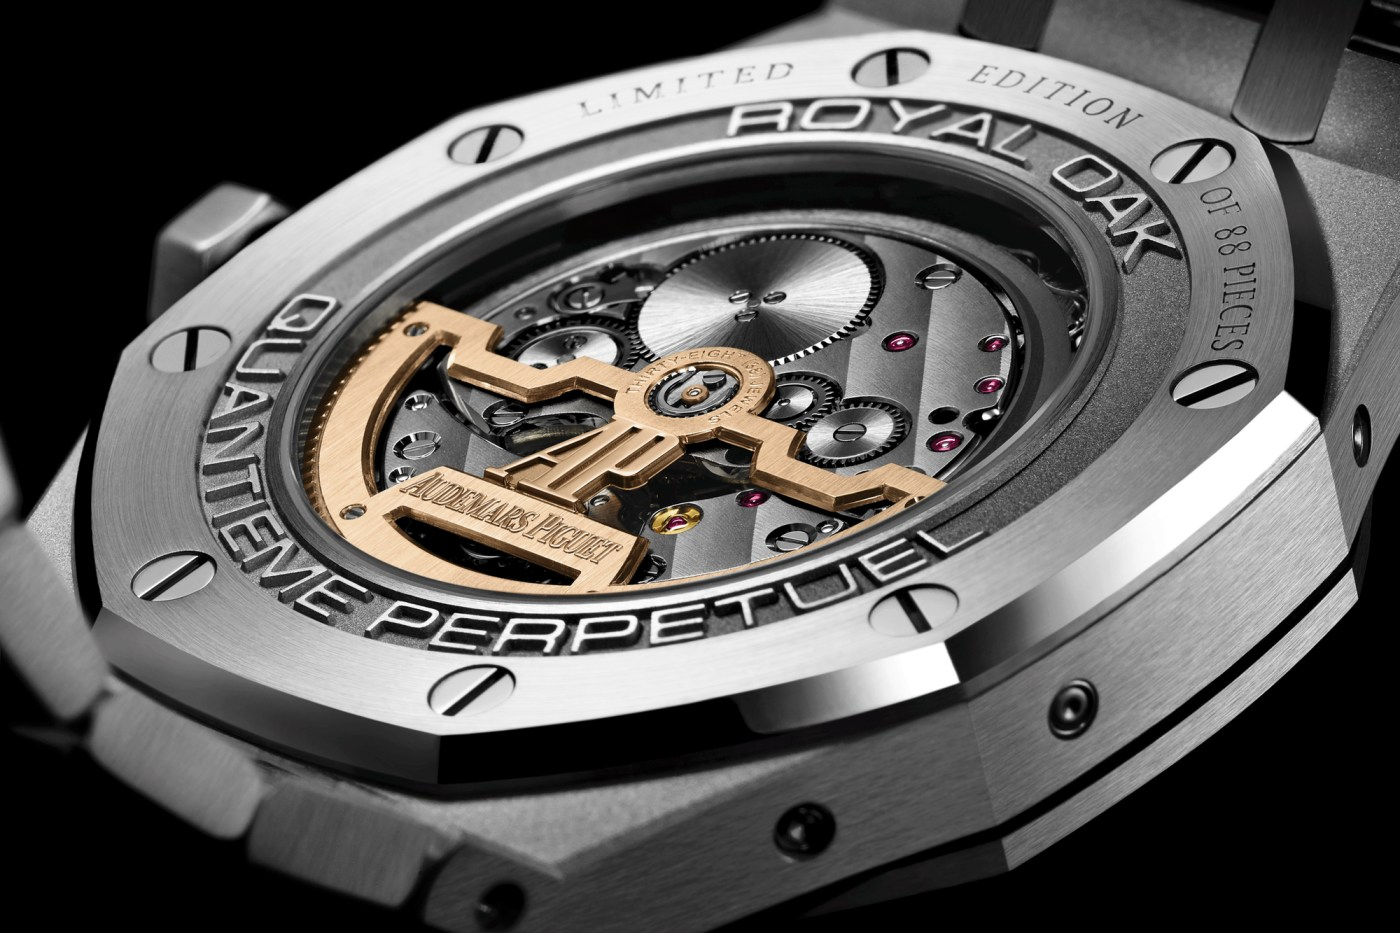 Royal Oak Perpetual Calendar China Limited Edition caseback